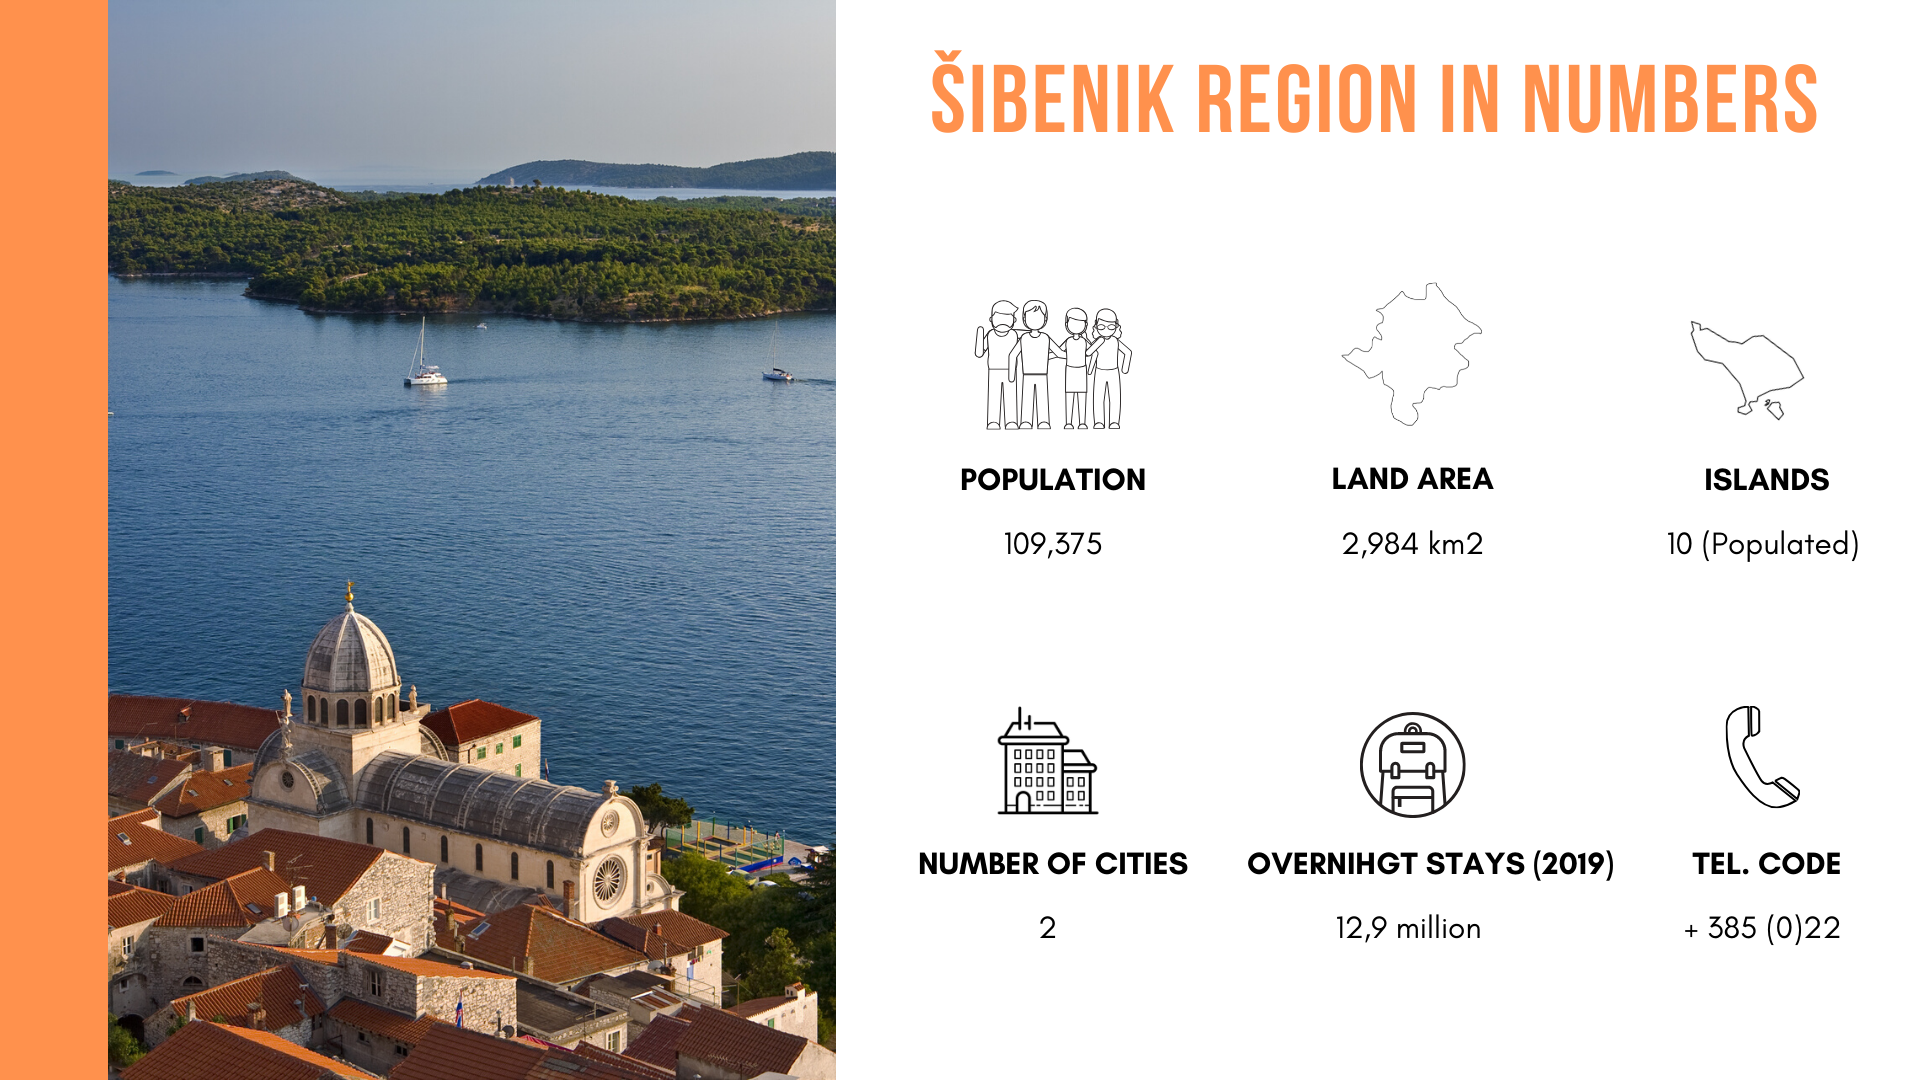 The infographic showing basic information about Šibenik-knin region in numbers.